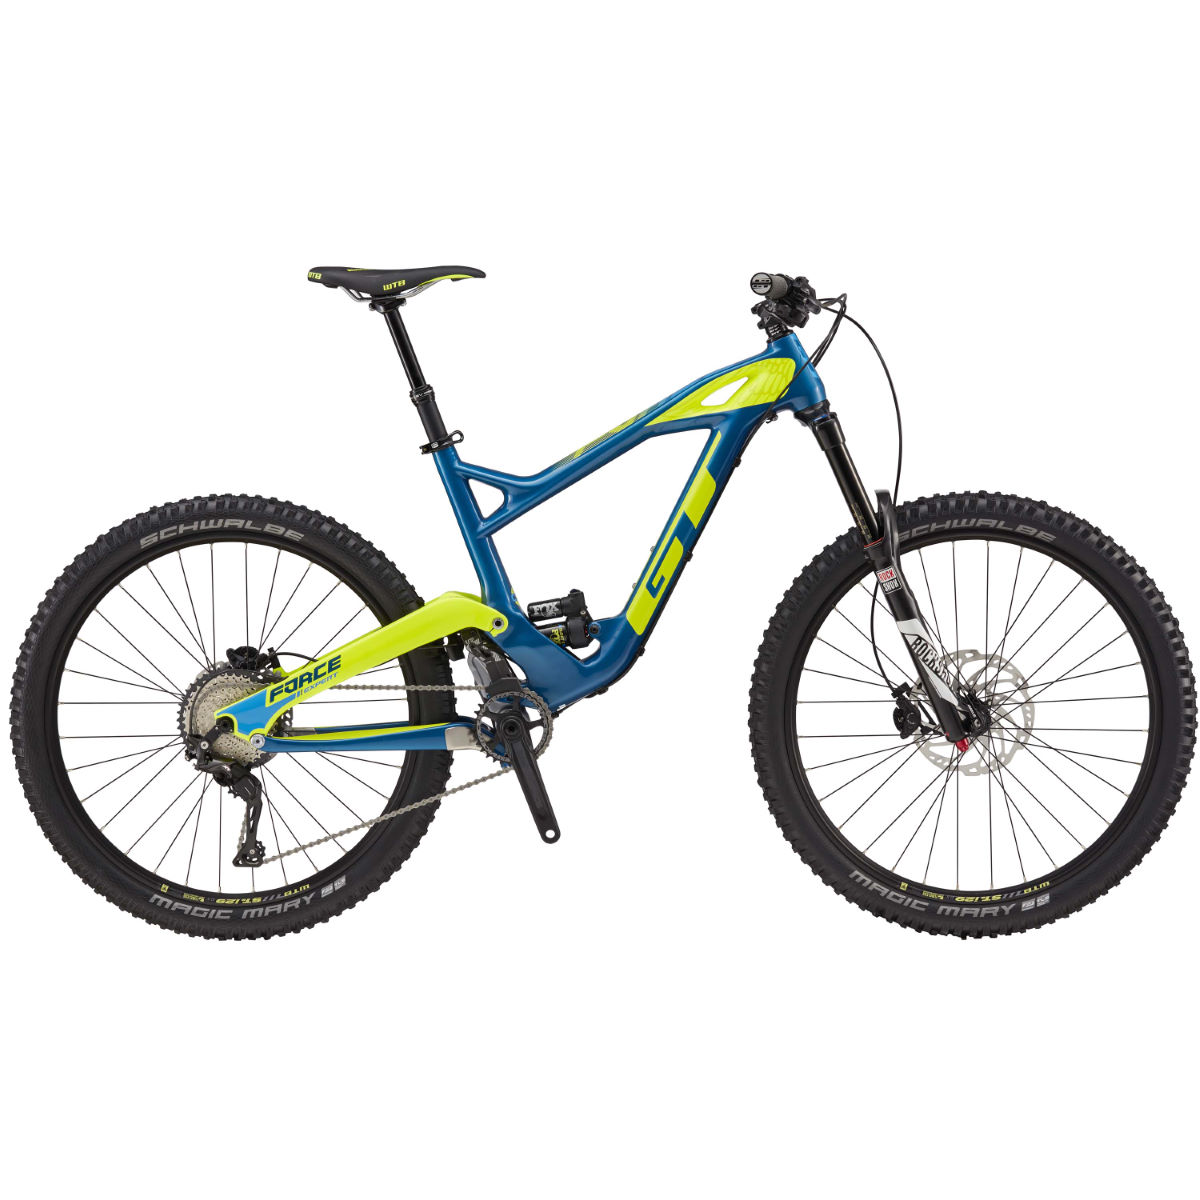 GT Force Carbon Expert (2017) Mountain Bike   Full Suspension Mountain Bikes